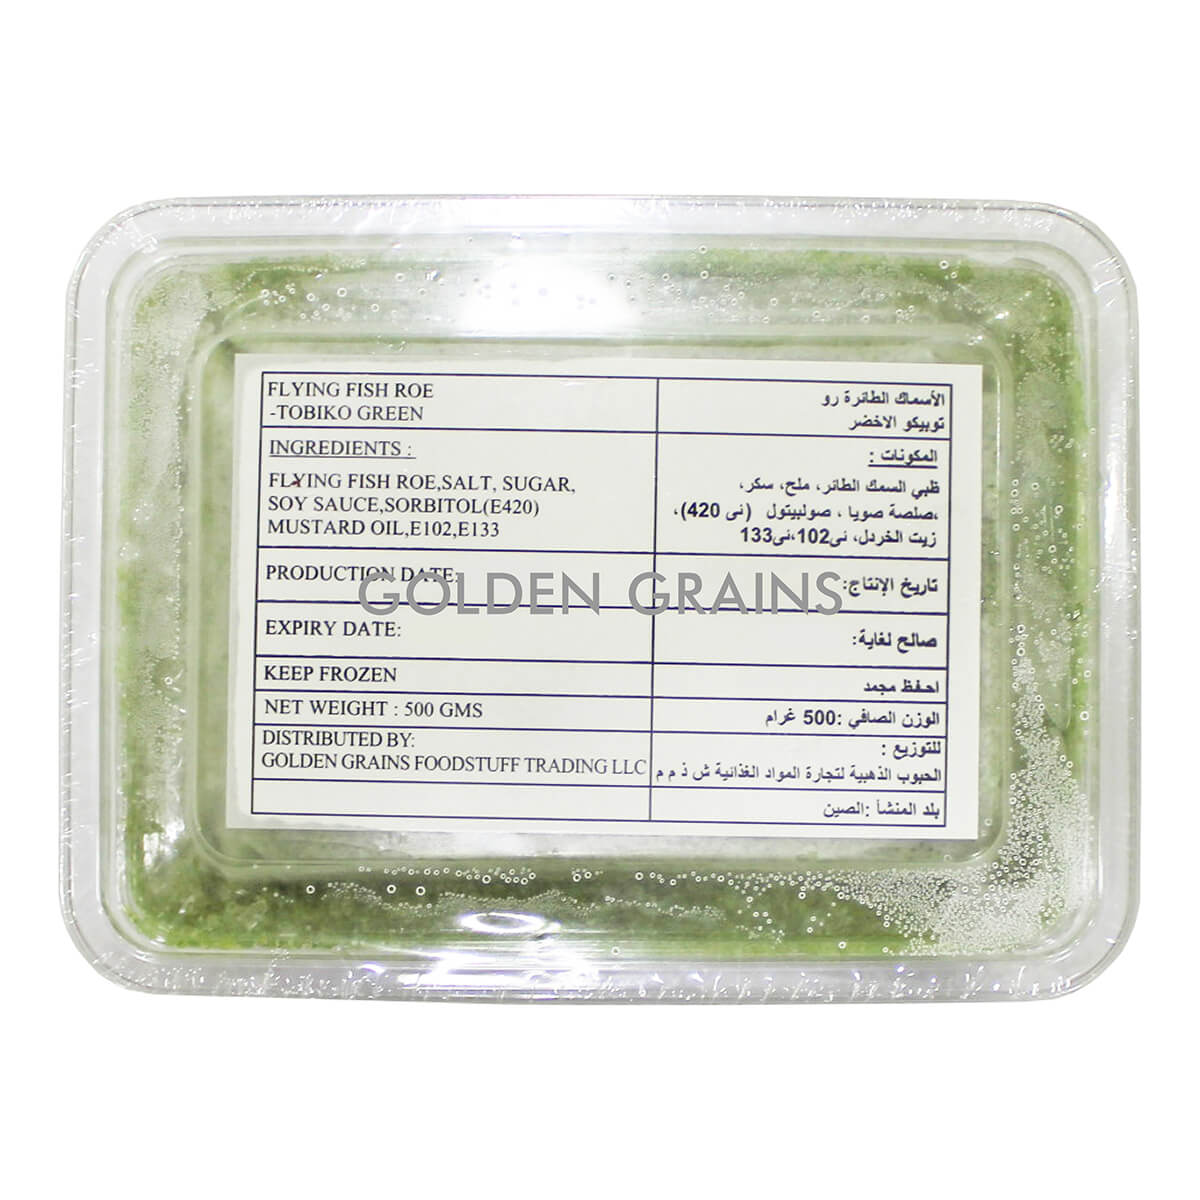 Golden Grains GGFT - Tobiko Green China - Front.jpg